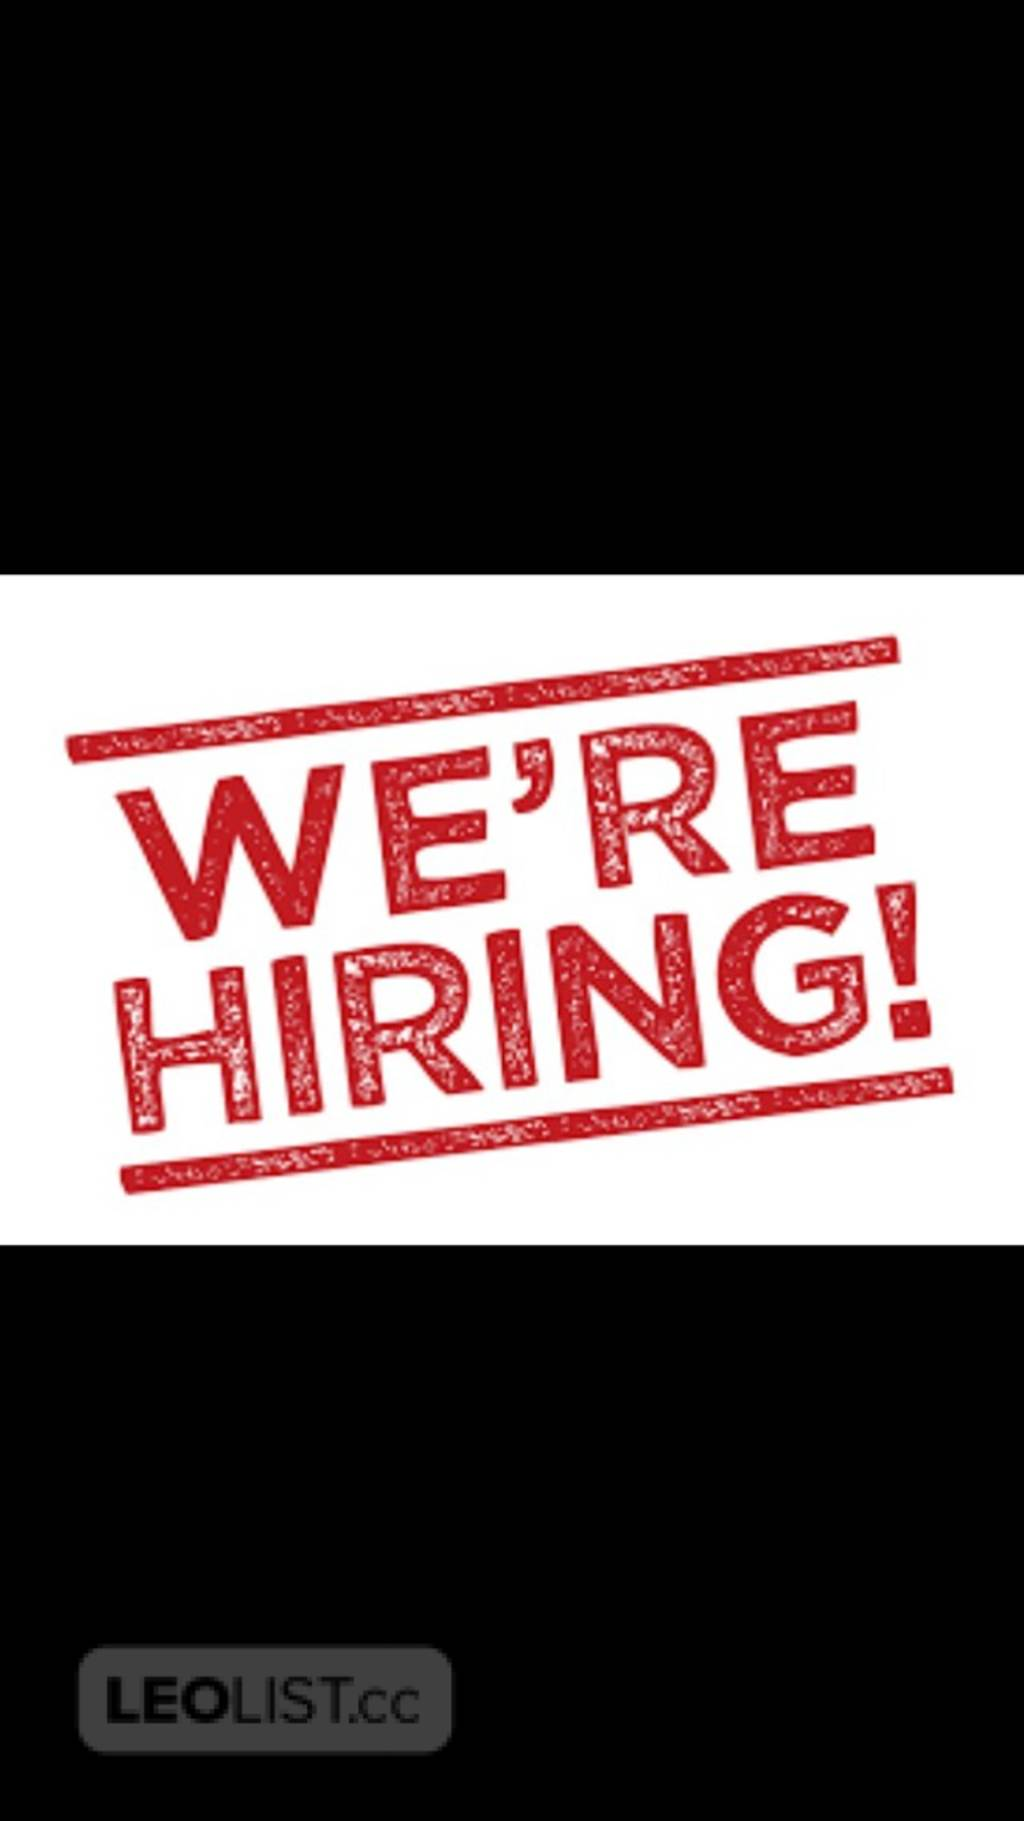 NOW HIRING Apply today to start work today  - 25